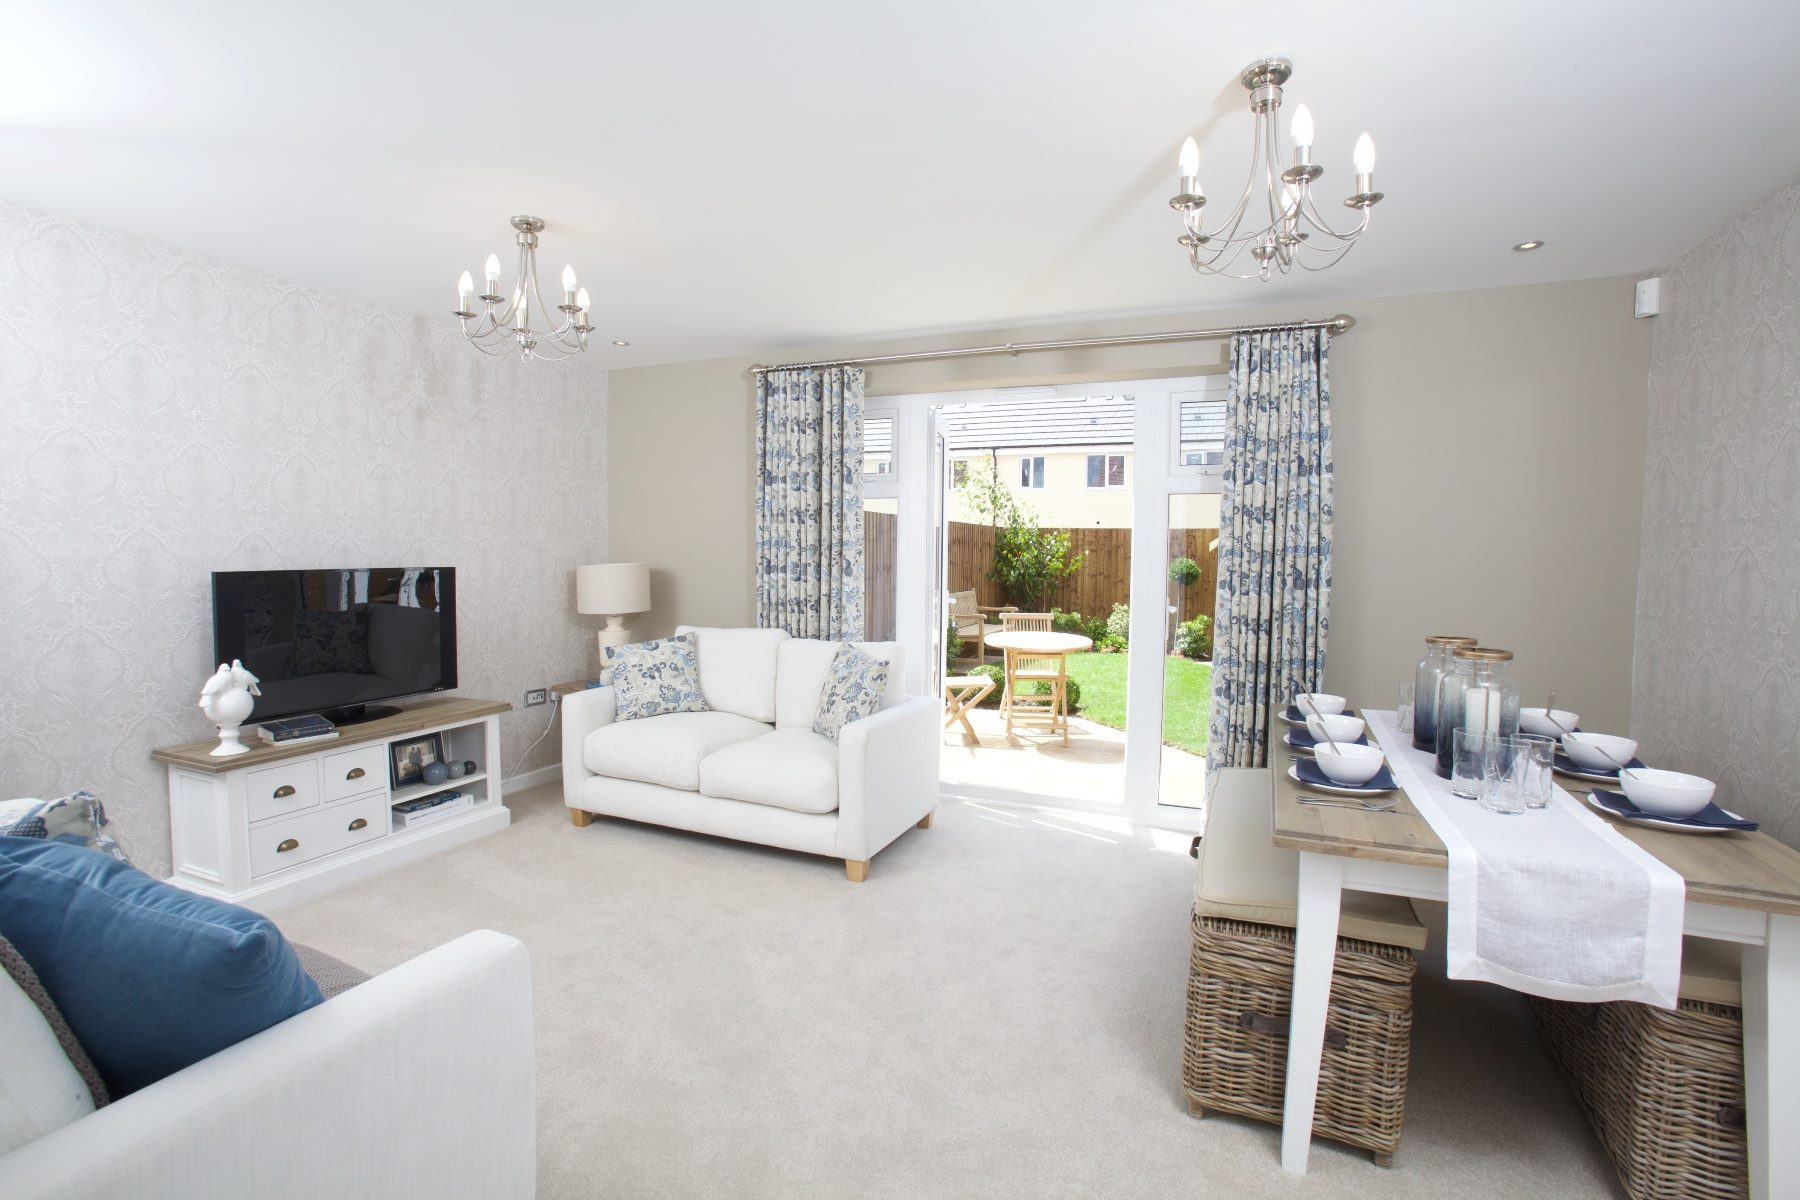 Kings Down showhome Crofton - Living room